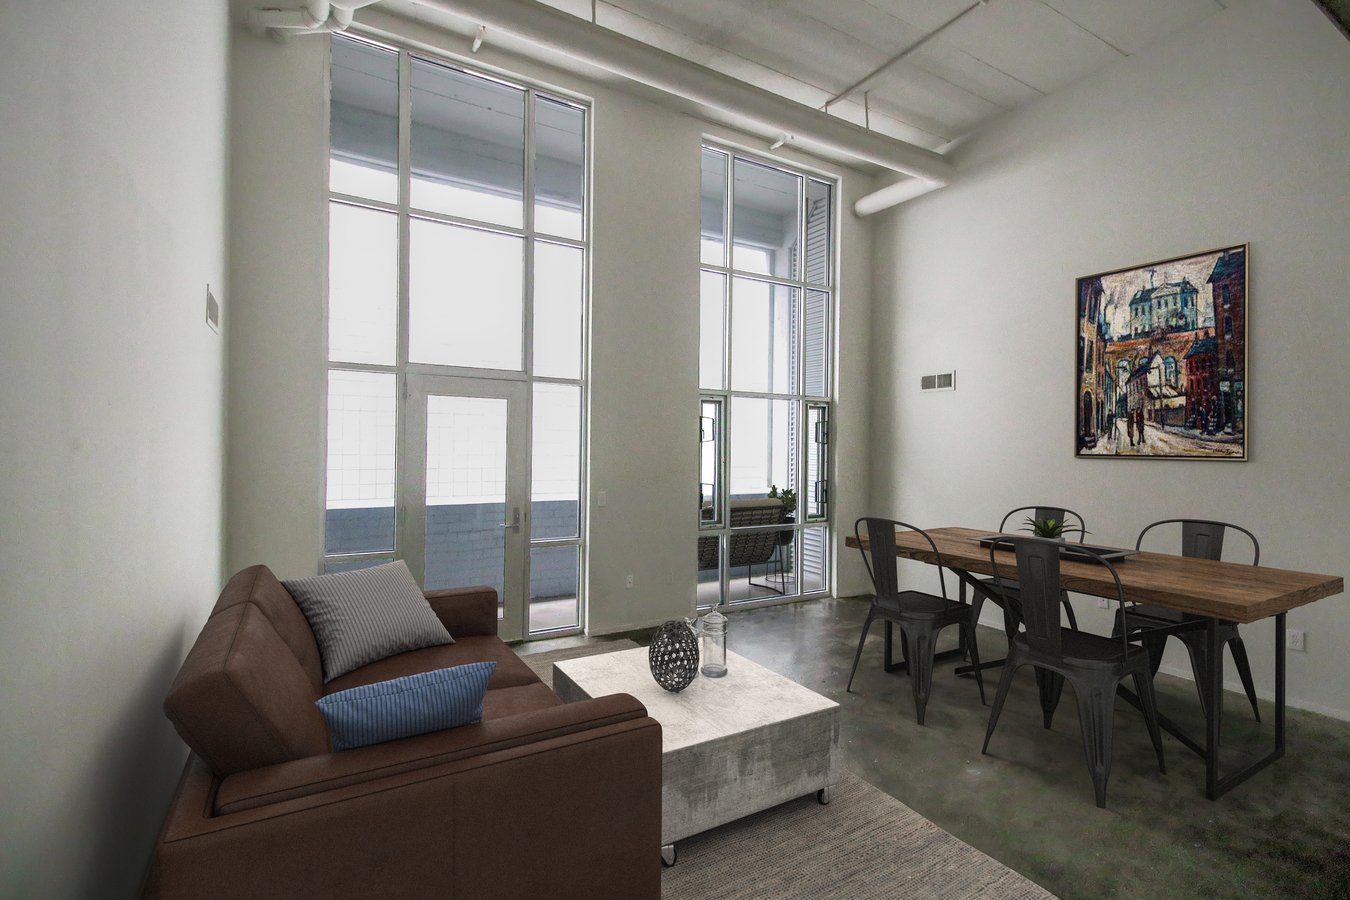 2 Bedrooms 1 Bathroom Apartment for rent at Sixty Spring in Columbus, OH